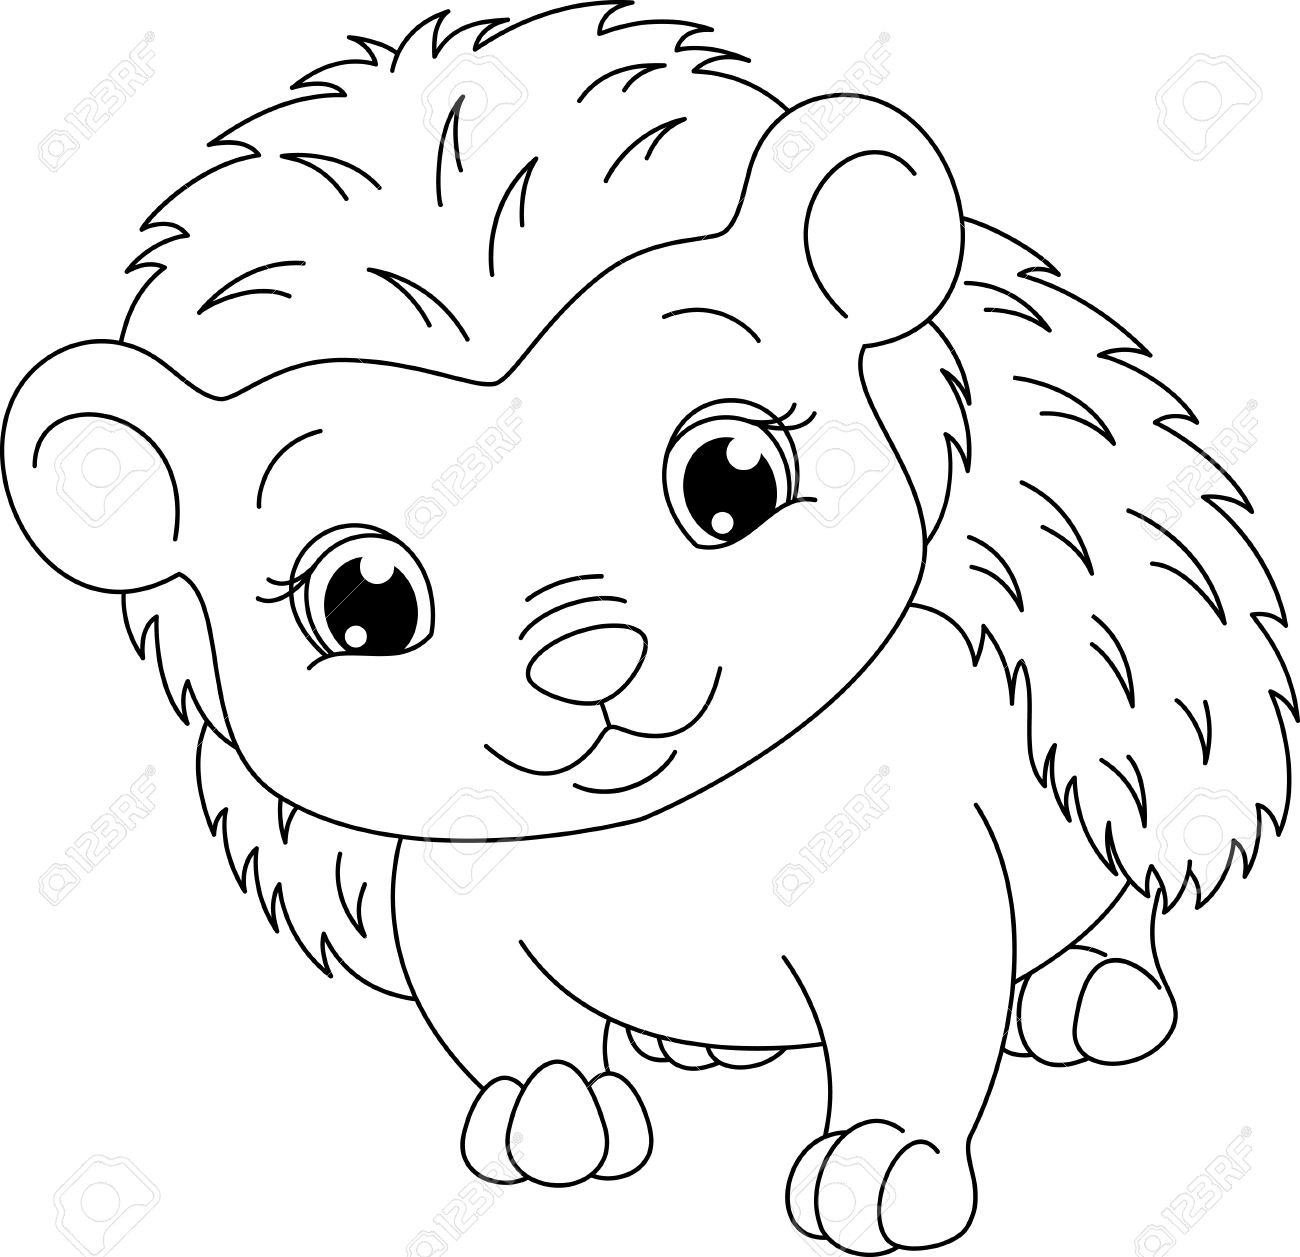 Hedgehog Coloring Page Royalty Free Cliparts, Vectors, And Stock